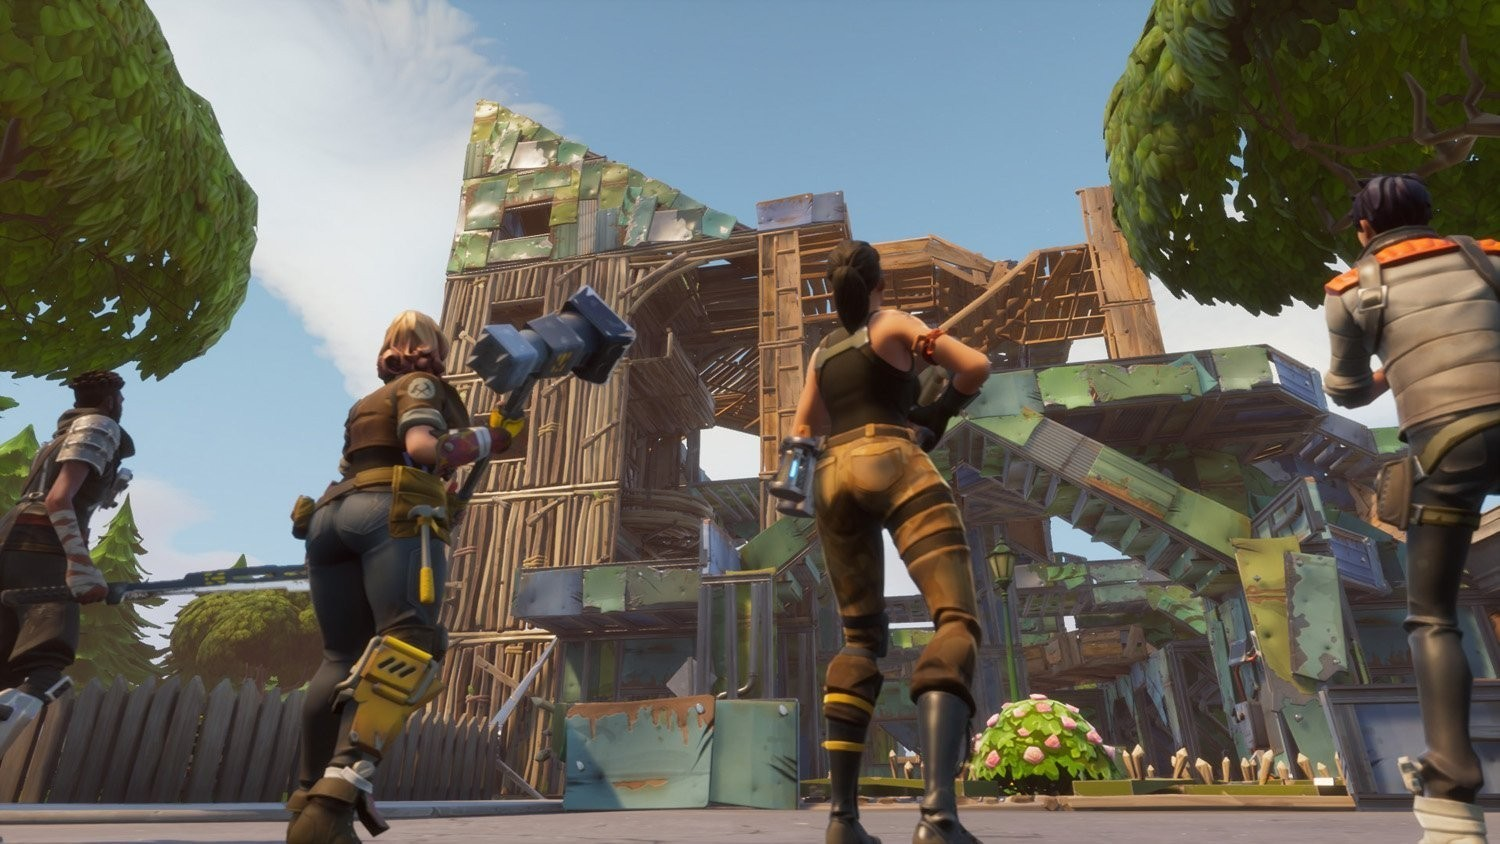 fortnite screenshot 1 fortnite screenshot 2 - fortnite clac ami ps4